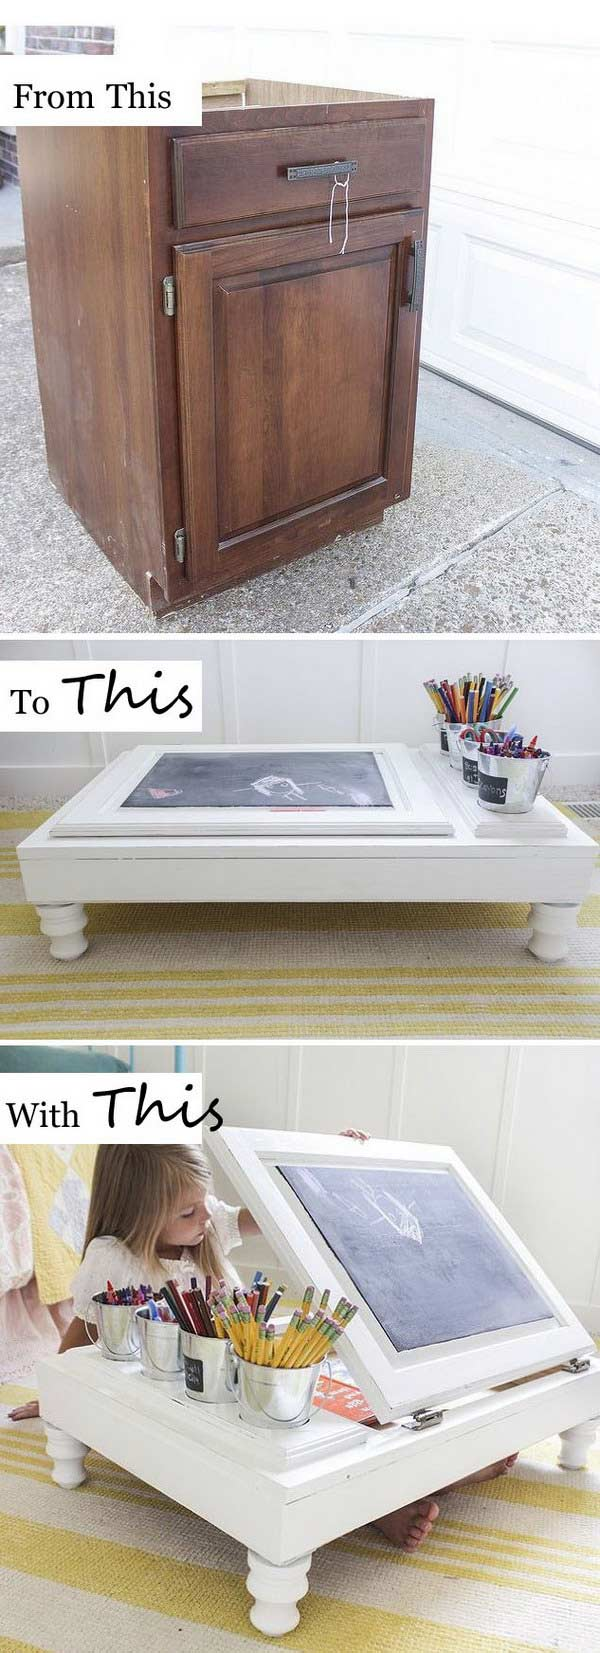 Child's Desk Rebuilt From a Kitchen Cabinet